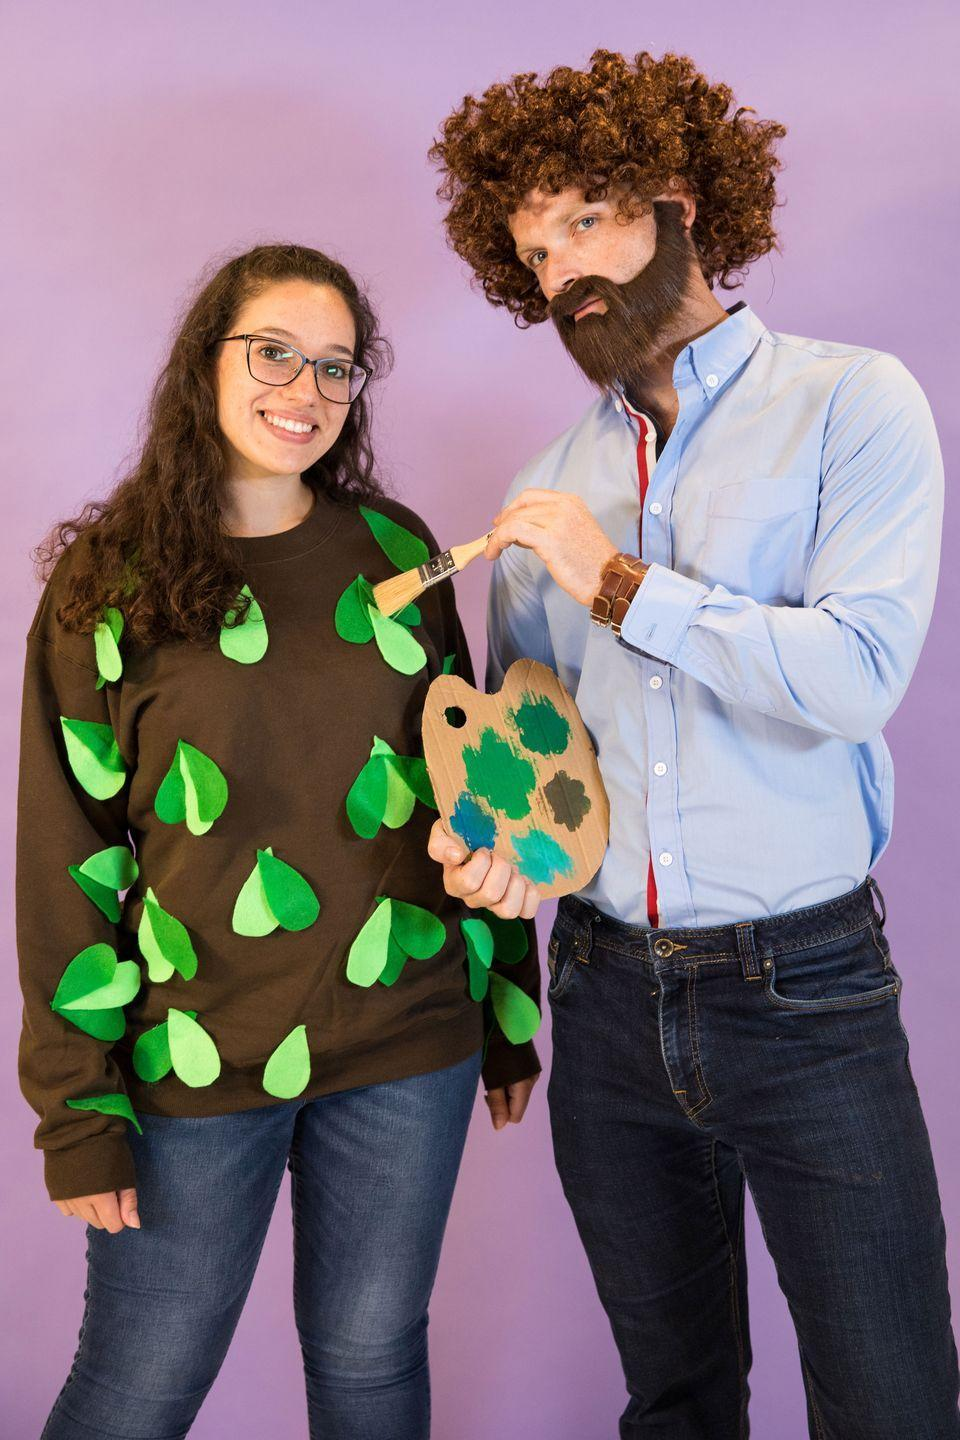 """<p>Talk a trip back to your childhood — or last night's Netflix binge — with this easy-to-DIY costume. Not to mention, the complete look is comfortable enough for all-day wear. </p><p><a class=""""link rapid-noclick-resp"""" href=""""https://www.amazon.com/Forum-Novelties-Wig-80s-Beard-Standard/dp/B01IQ3MP8W/?tag=syn-yahoo-20&ascsubtag=%5Bartid%7C10055.g.2625%5Bsrc%7Cyahoo-us"""" rel=""""nofollow noopener"""" target=""""_blank"""" data-ylk=""""slk:SHOP CURLY BROWN WIG"""">SHOP CURLY BROWN WIG</a></p>"""